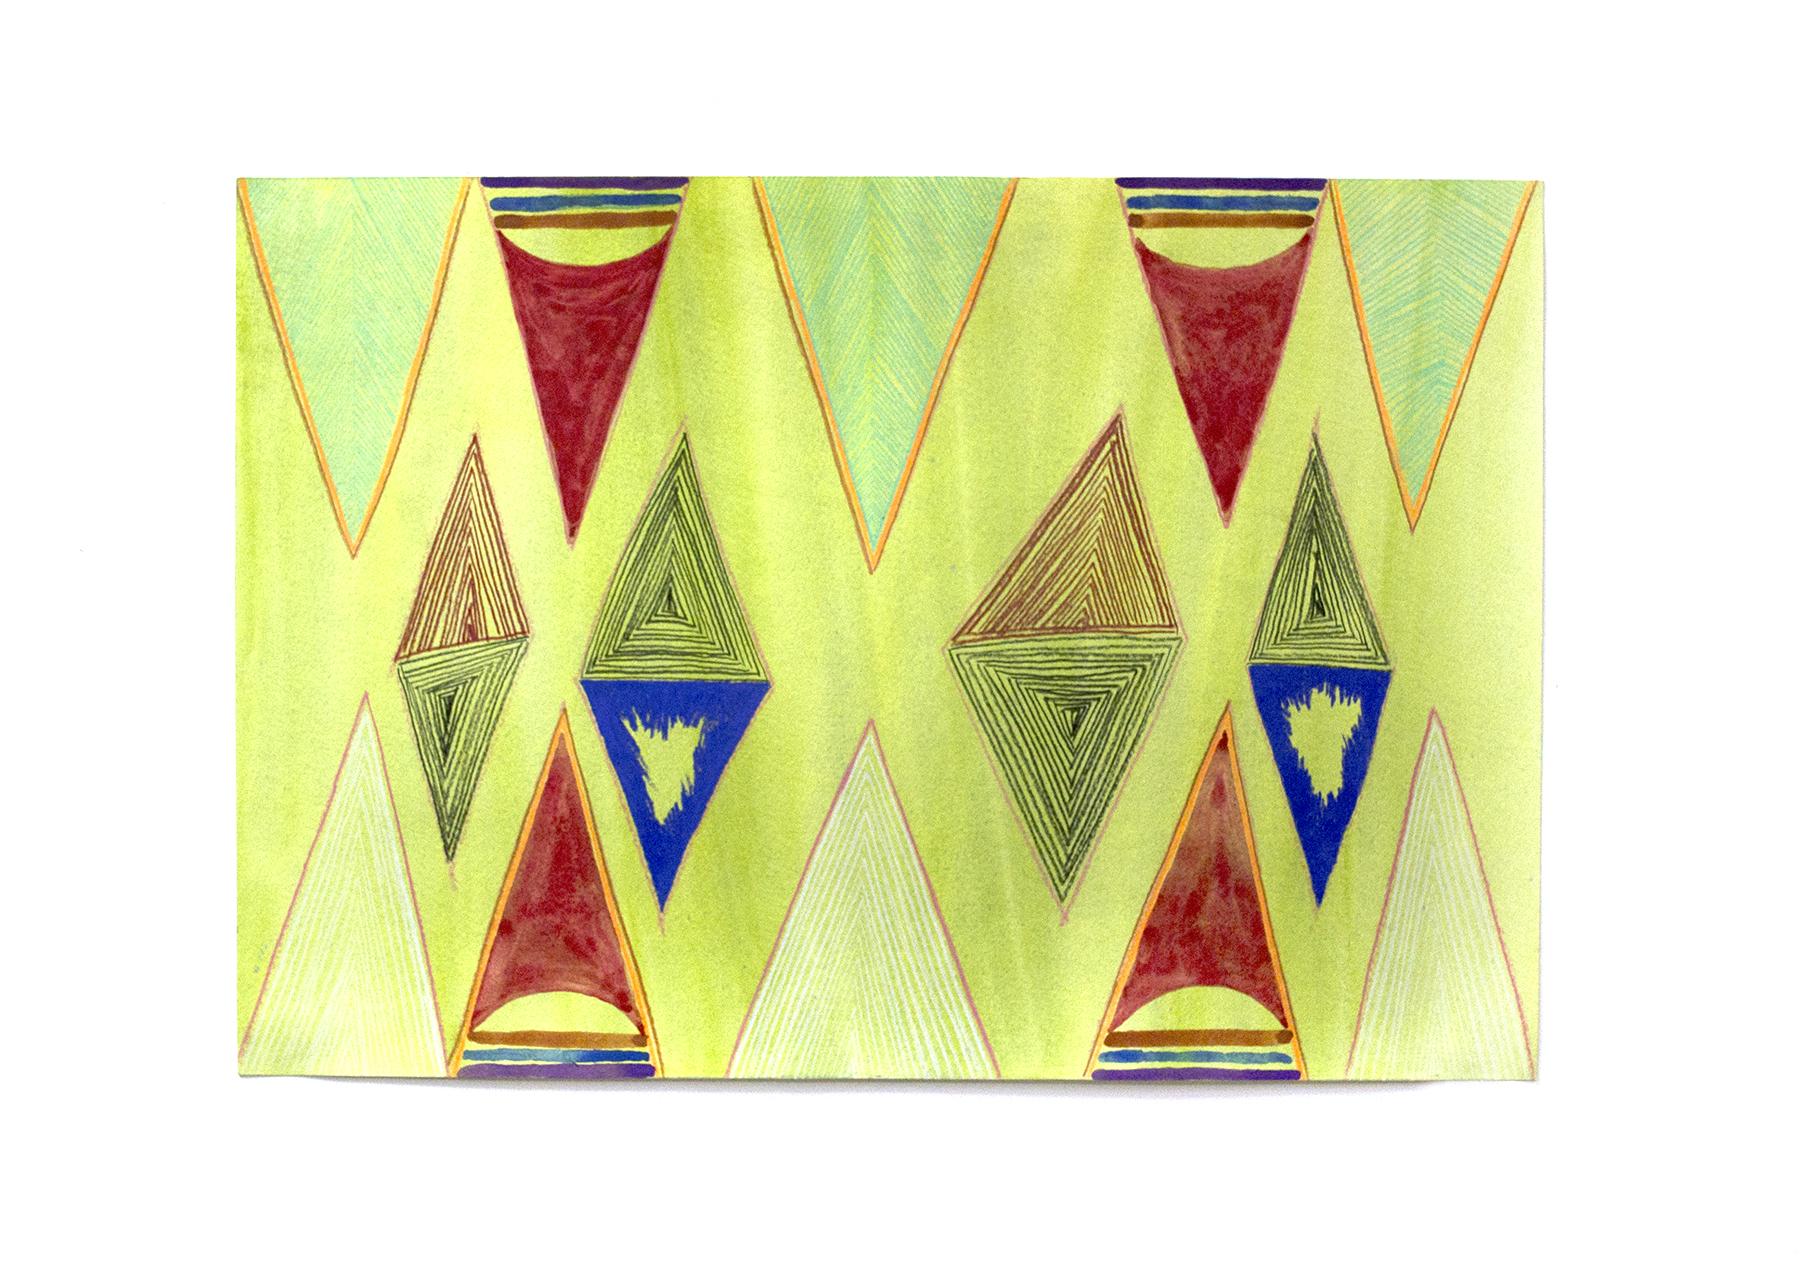 "Red and Blue Triangles on Green, 2016, Charlene Vickers (Anishnabe), Watercolour and pencil crayon on paper, 21"" x 14"", SOLD"